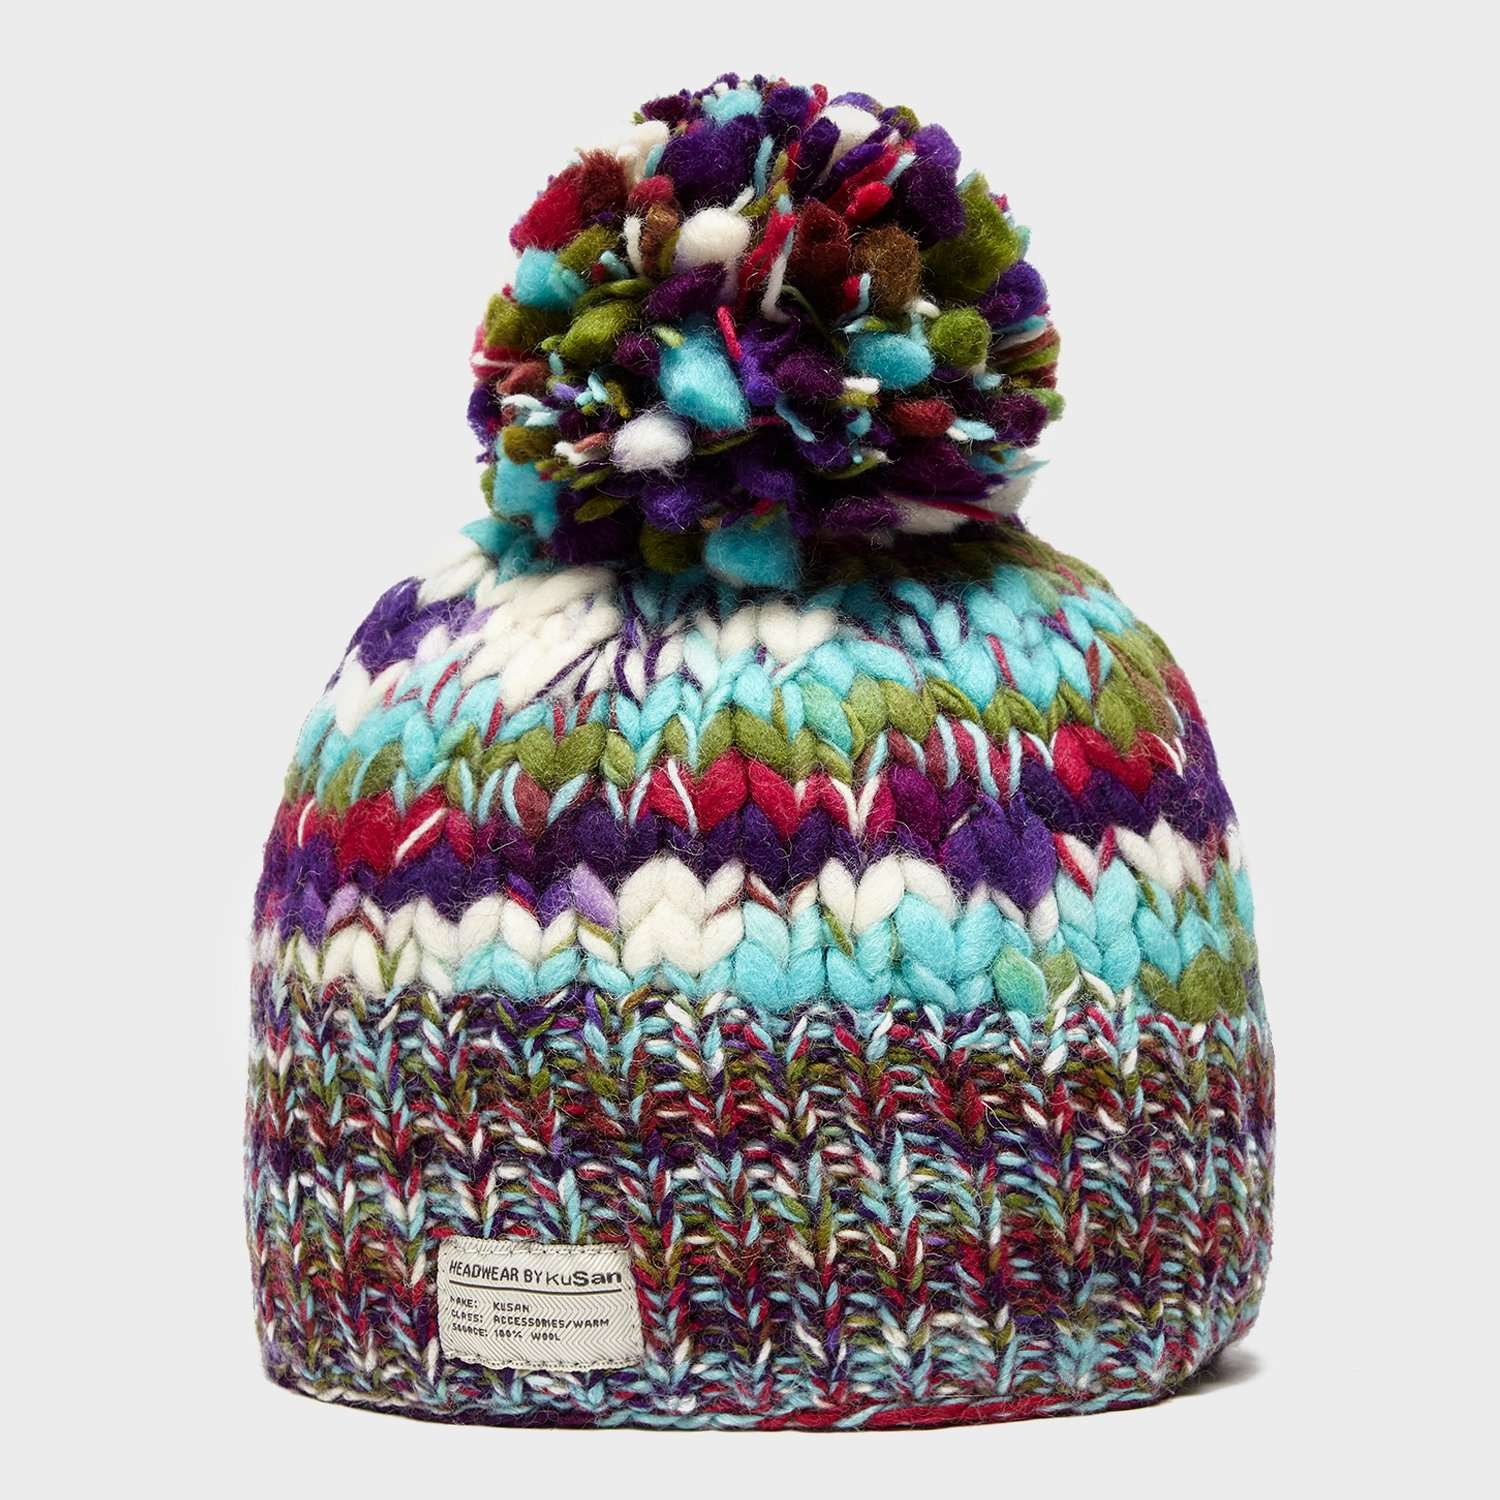 KUSAN Women's Rainbow Bobble Hat